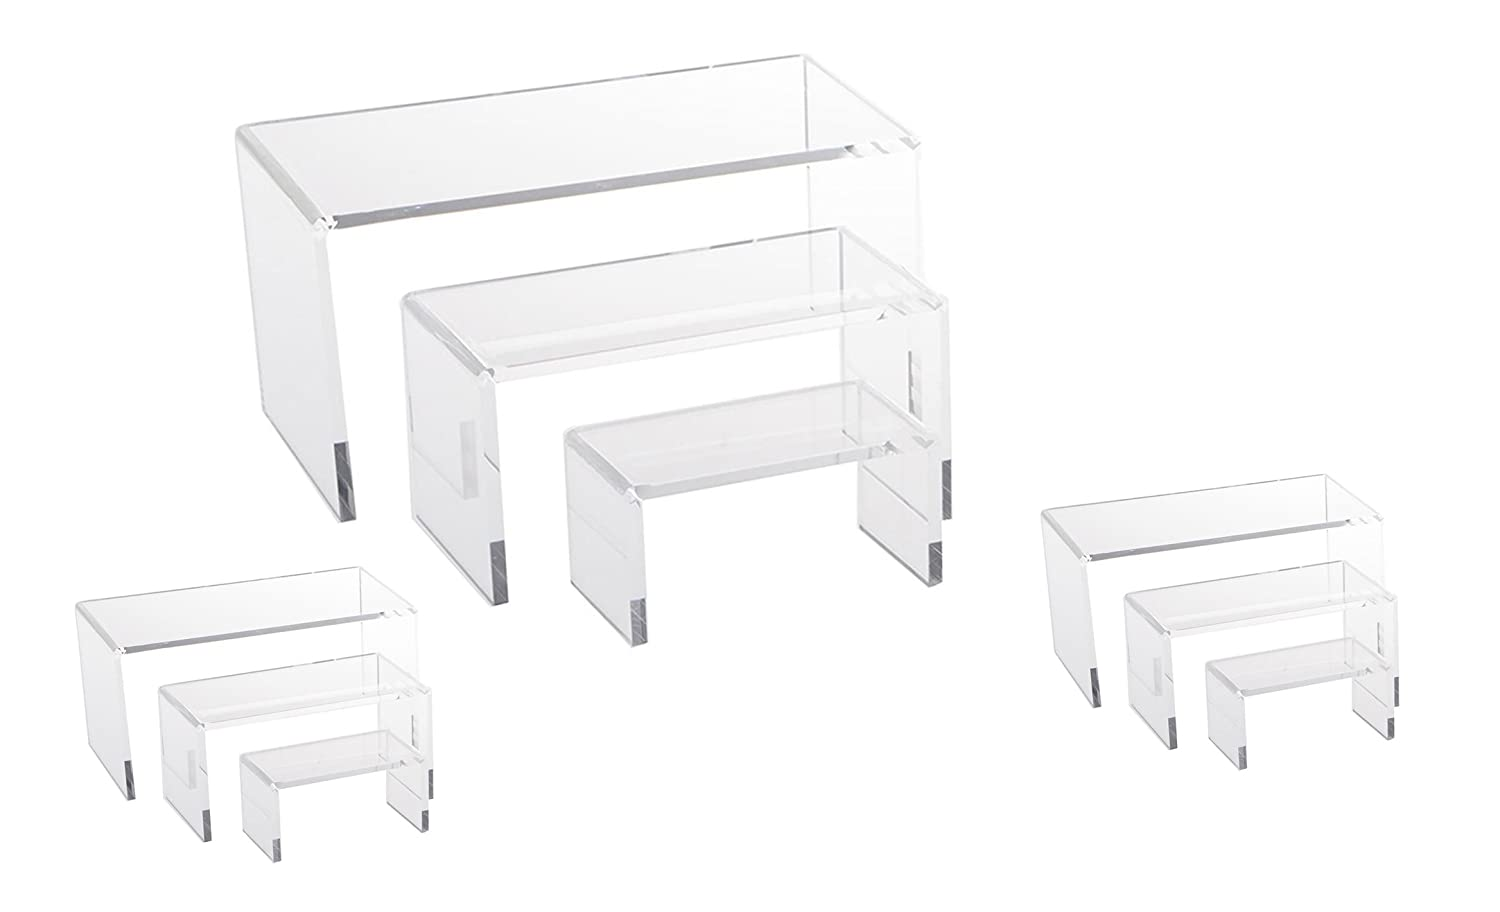 9 Piece Set - Clear Acrylic Display Risers, Acrylic Clear Riser Set N' ice Packaging